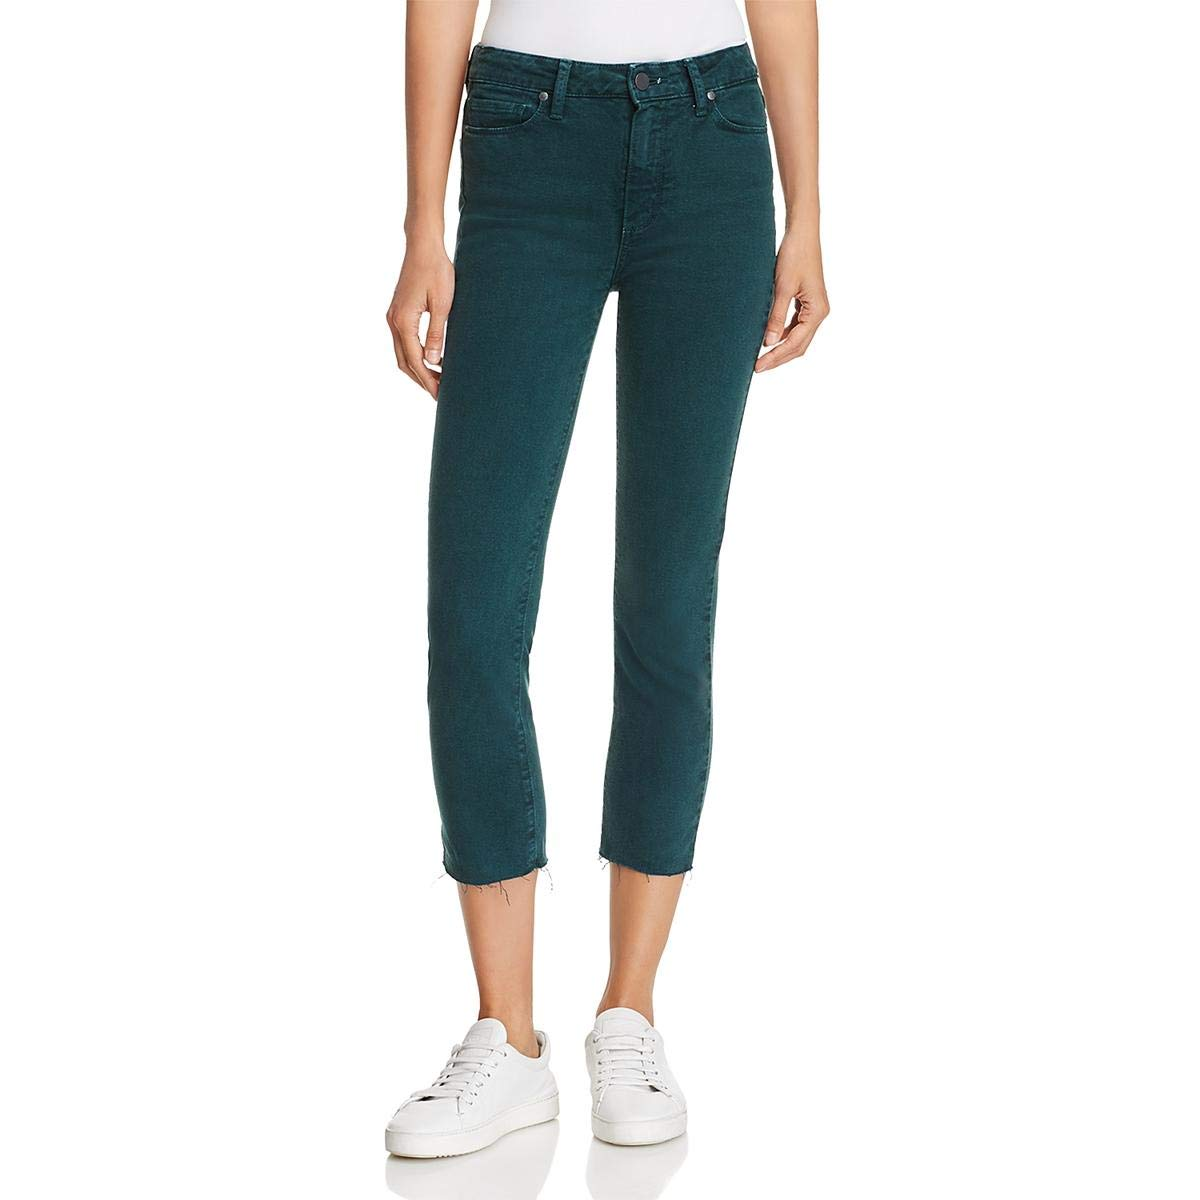 Paige Womens Hoxton Raw Hem colord Cropped Jeans Green 24